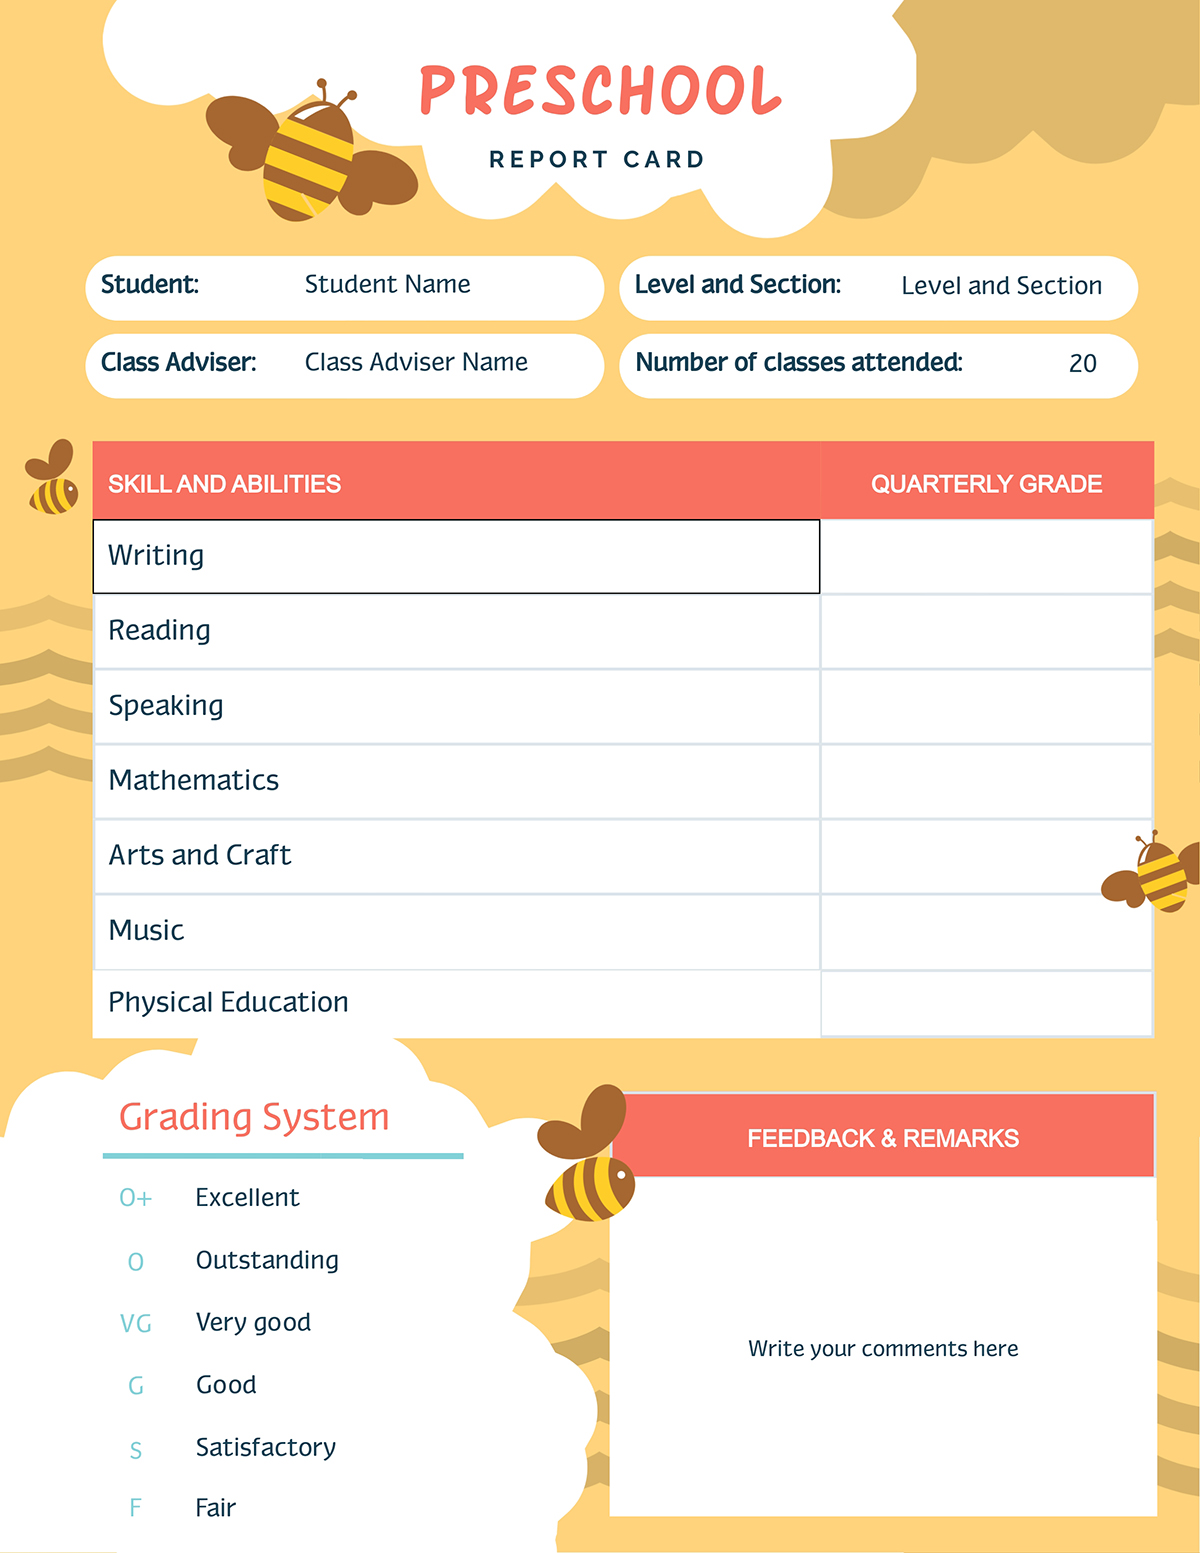 A preschool report card template available to edit in Visme.